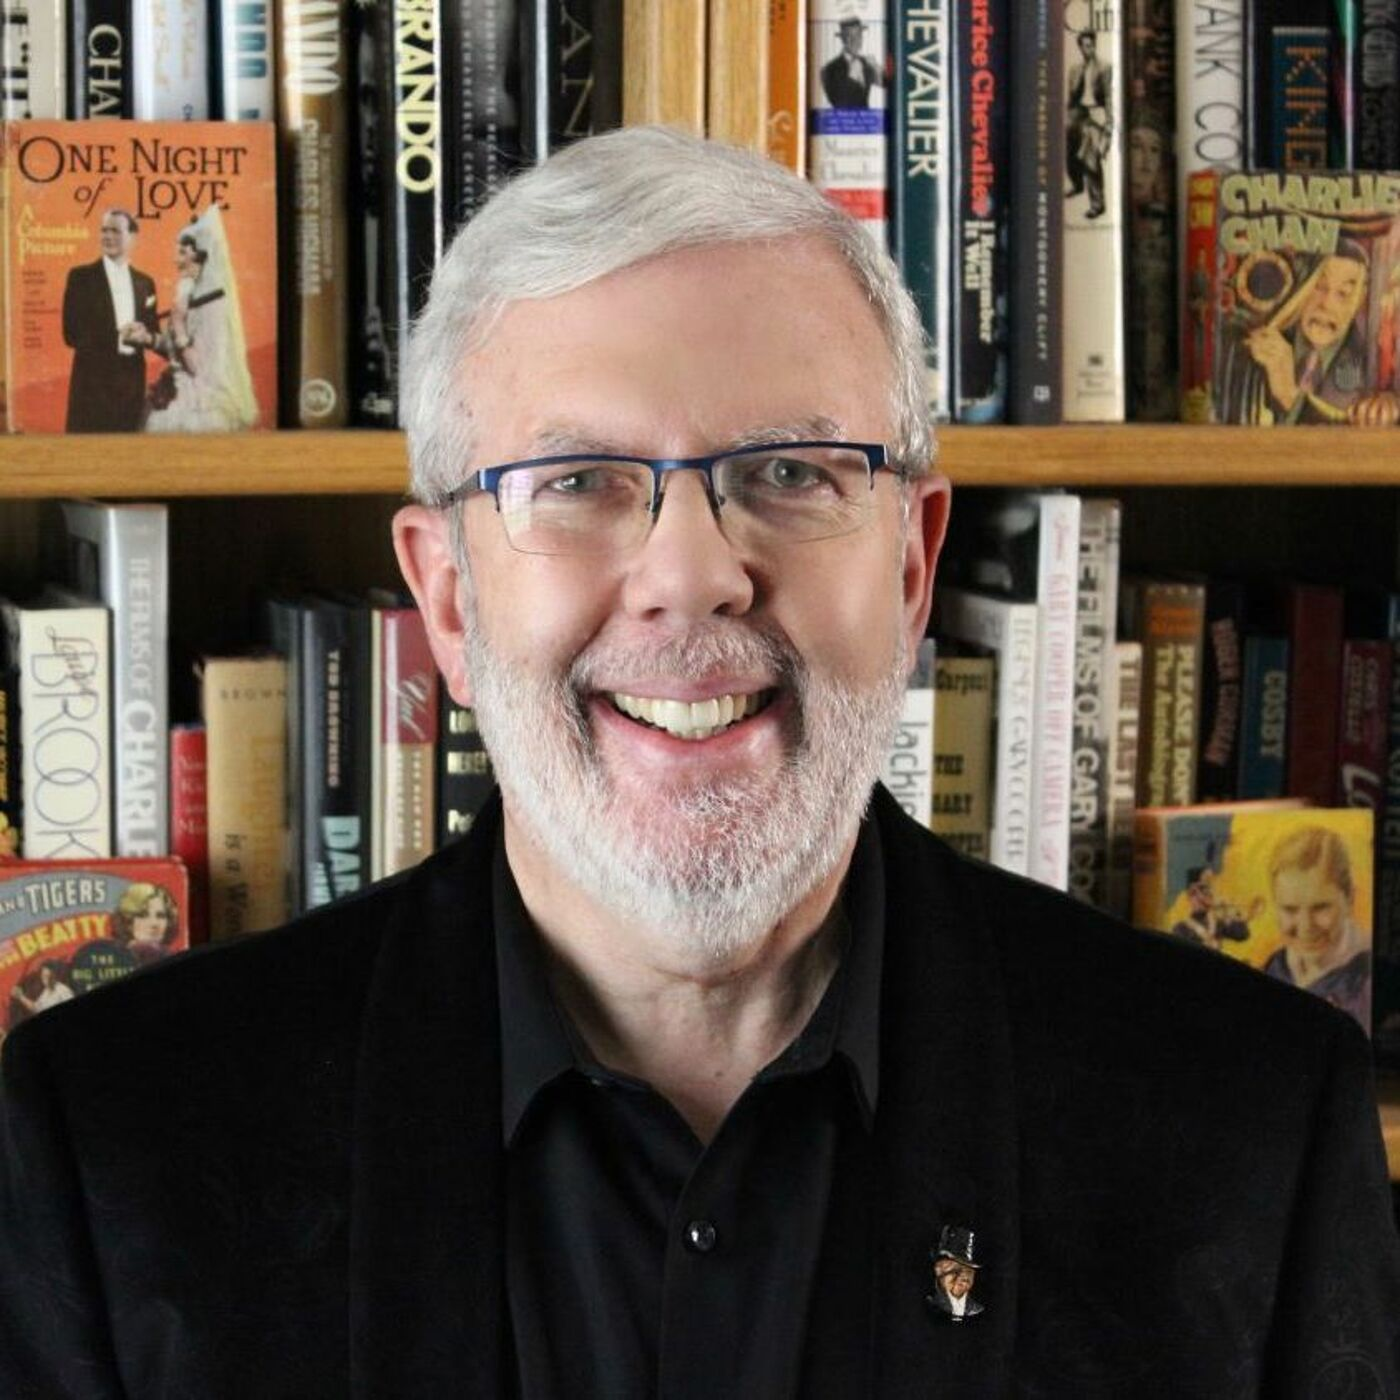 Episode 12: film critic Leonard Maltin